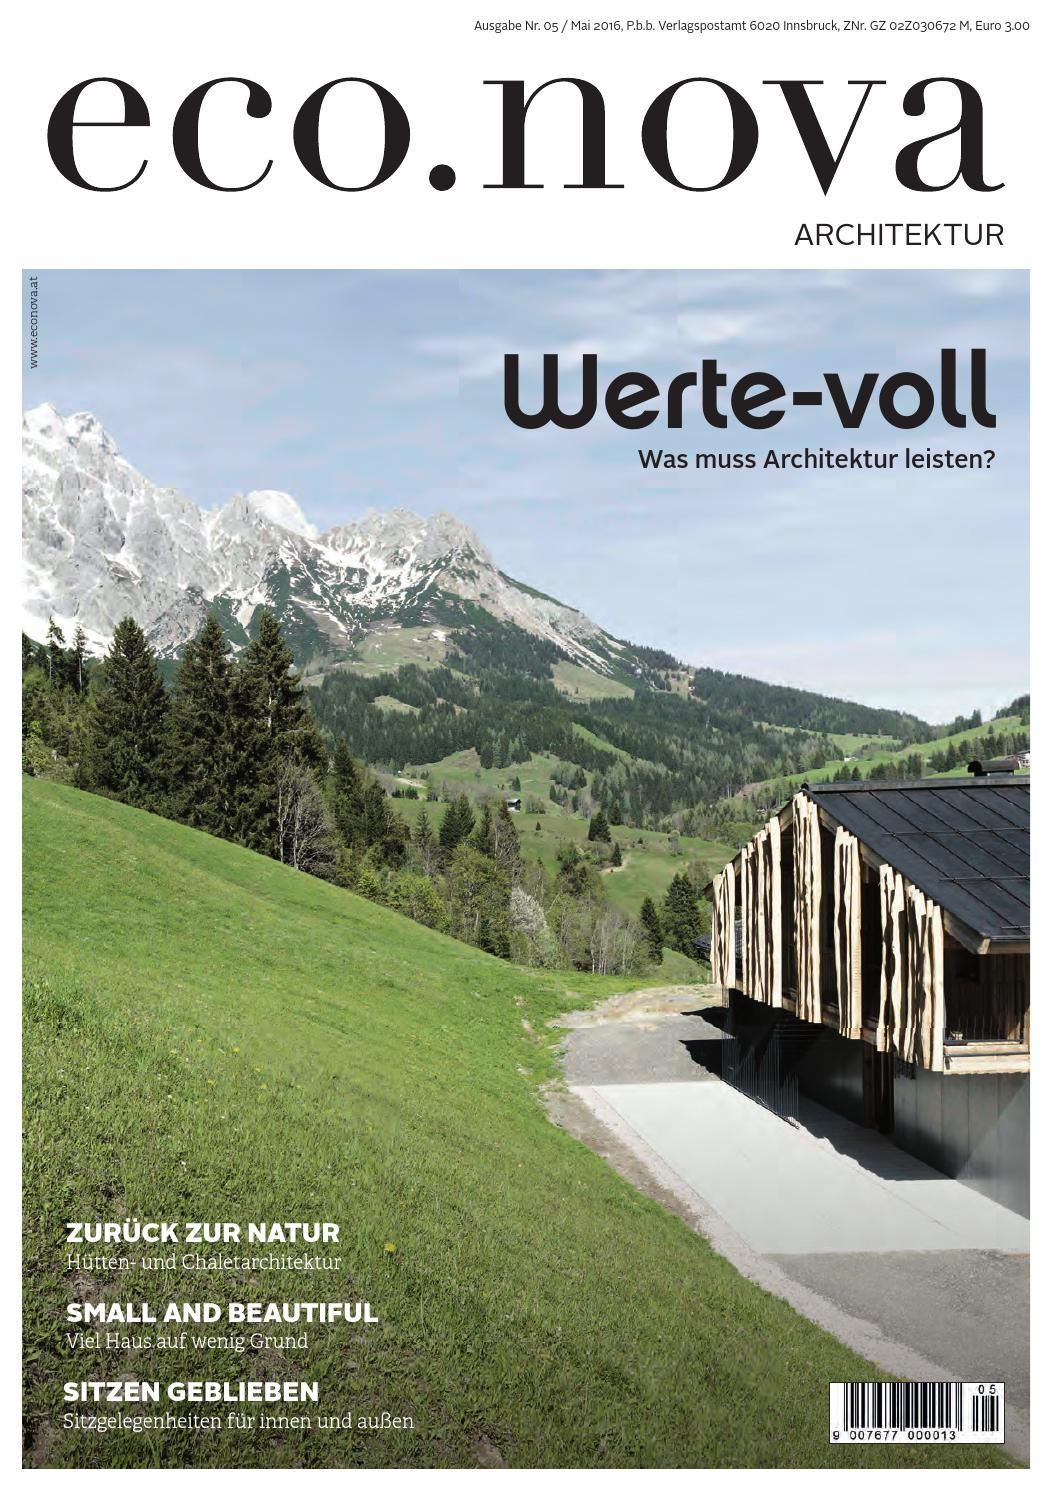 Eco.nova SPEZIAL Architektur 2016 By Eco.nova Verlags Gmbh   Issuu